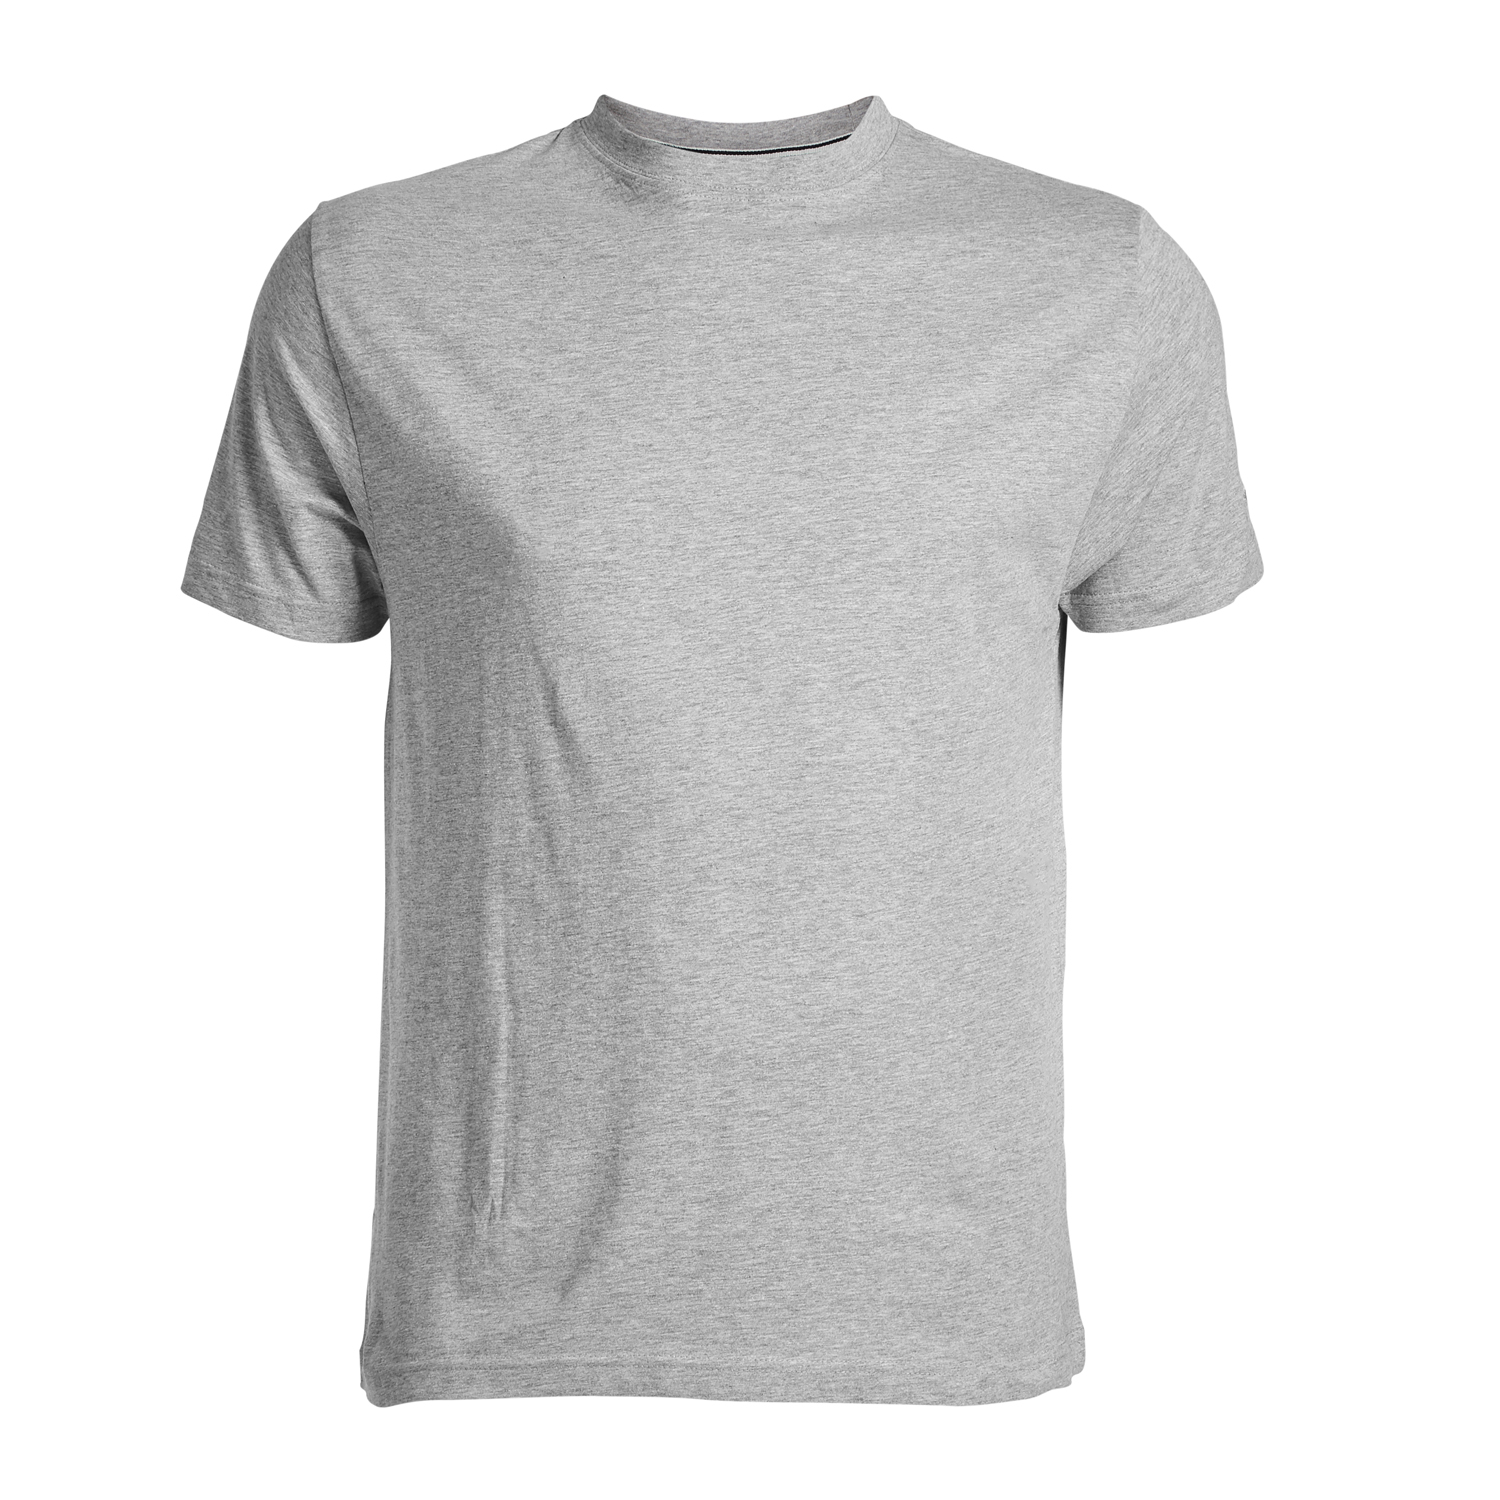 Detail Image to Grey basic t-shirt by North56°4 in oversizes up to 8XL